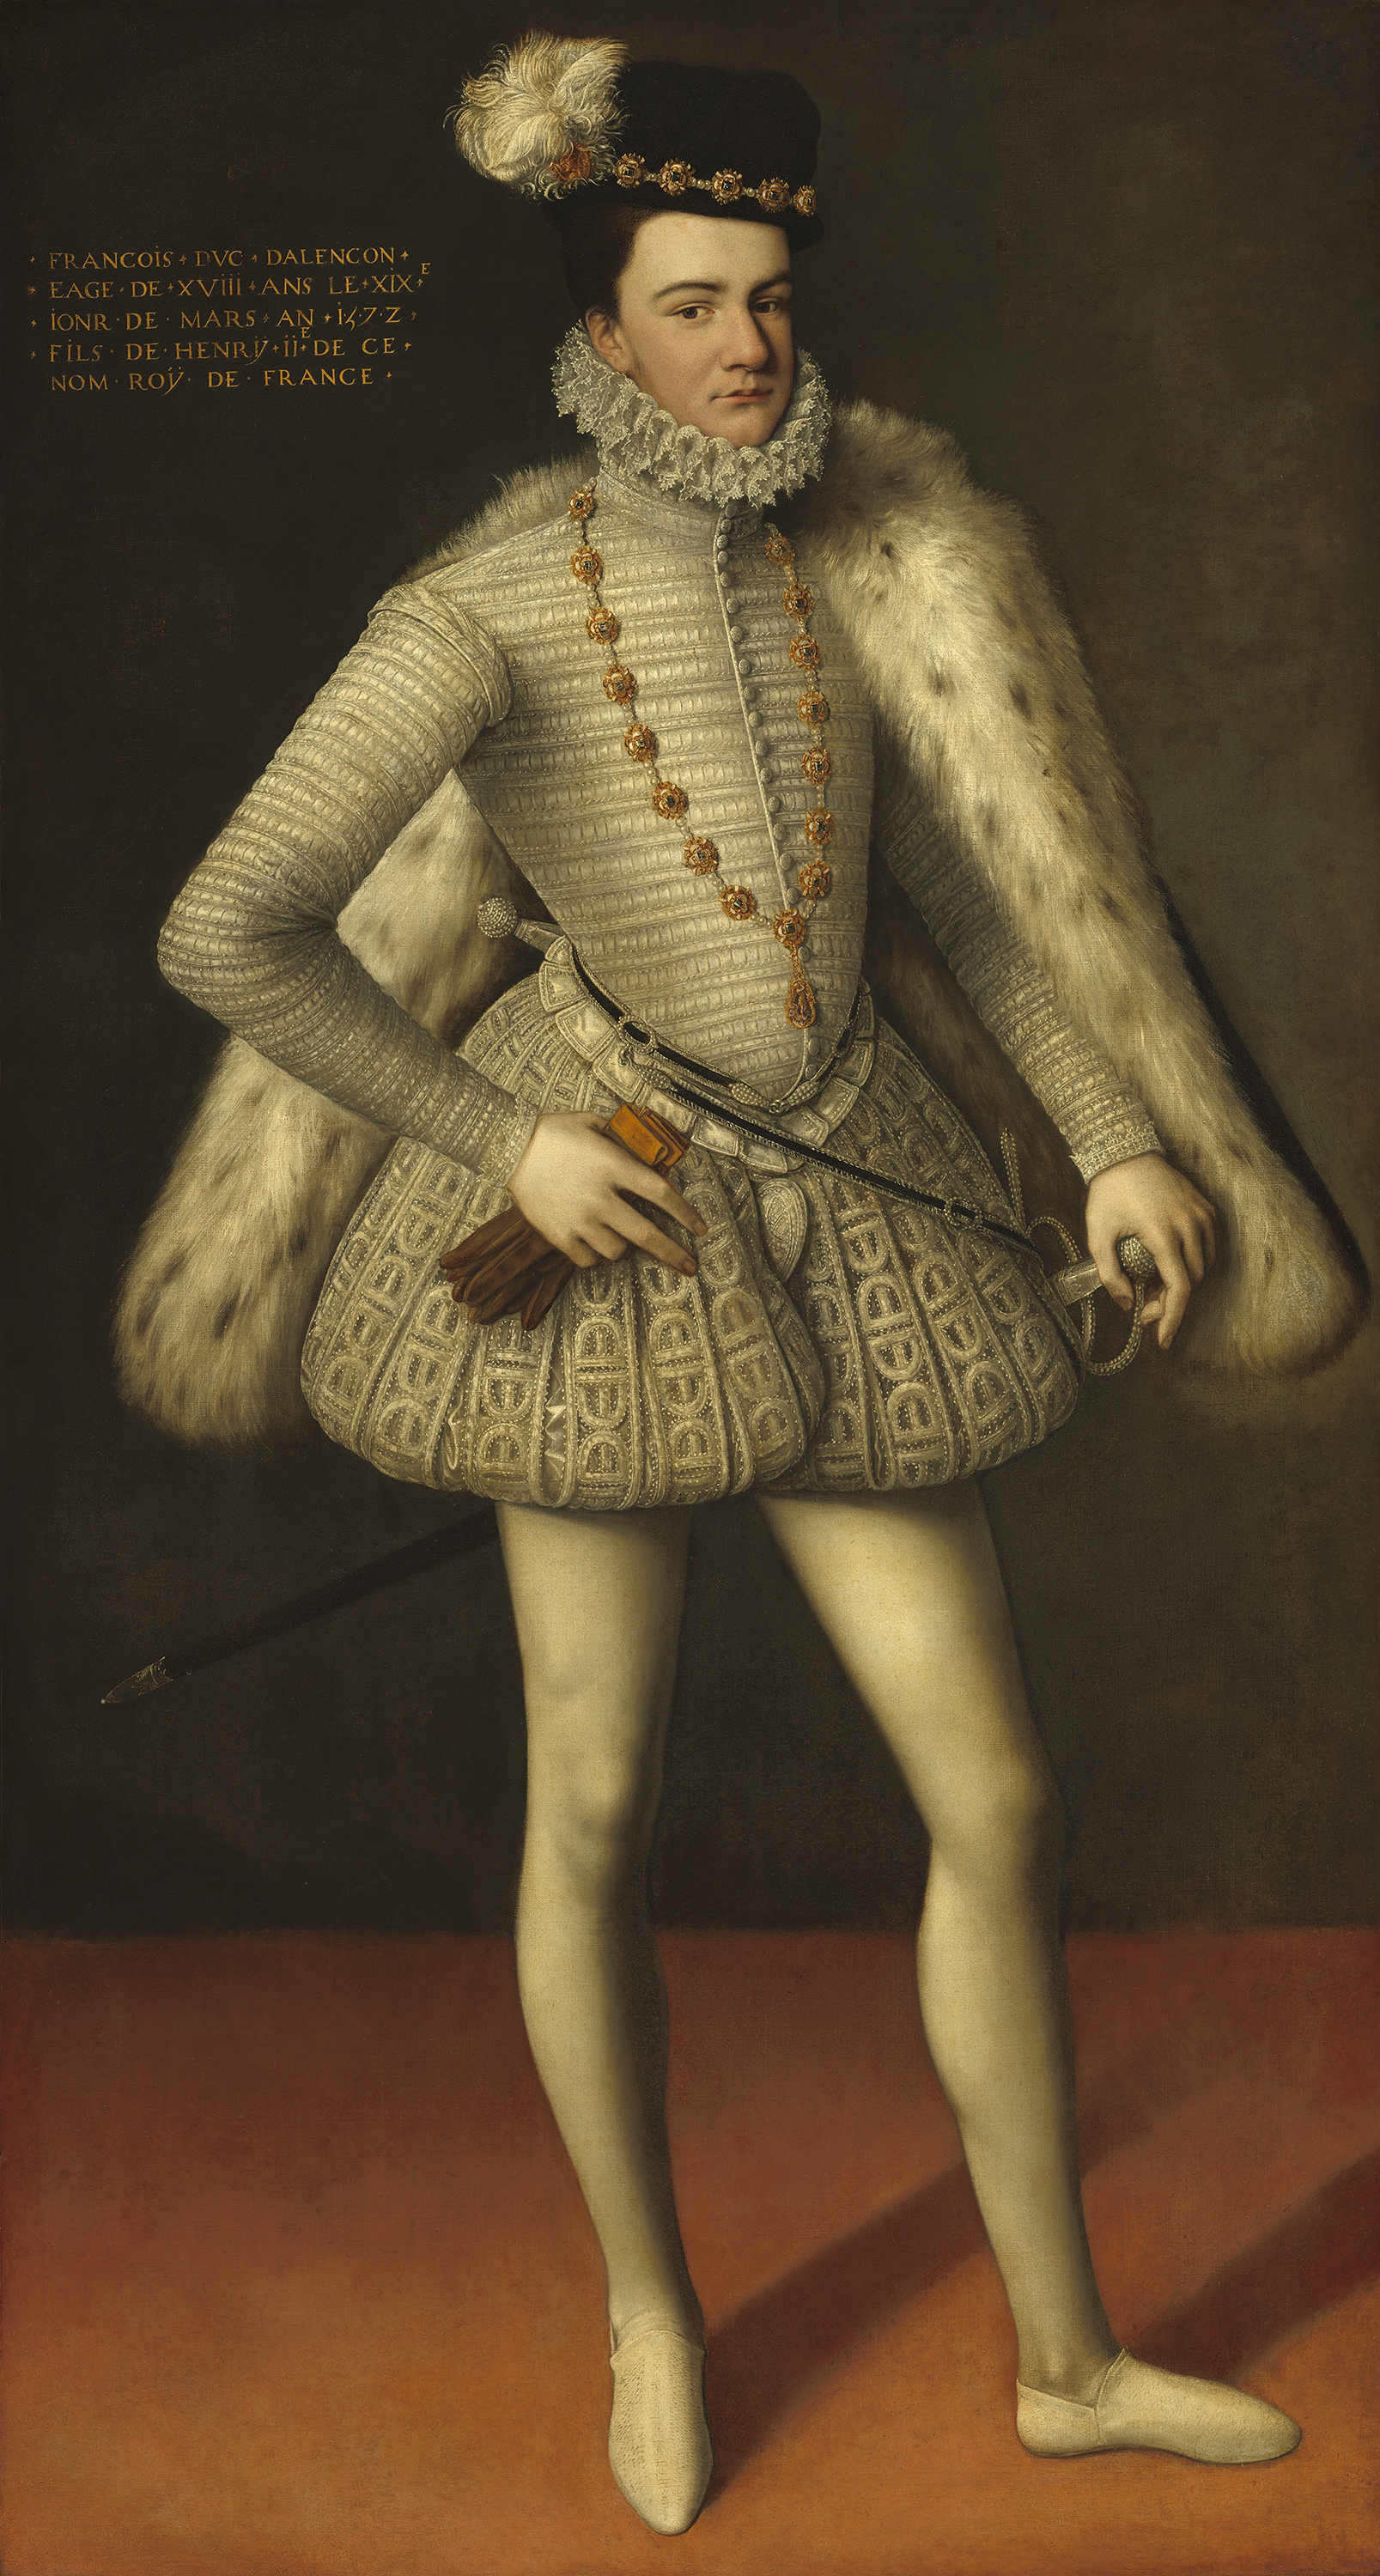 Portrait of Francis (1555-1584), Duke of Alençon (1566-1584), Duke of Anjou (1576-1584), heir presumptive to the throne of France from 1574 to 1584, 1572 | Portraits of Kings